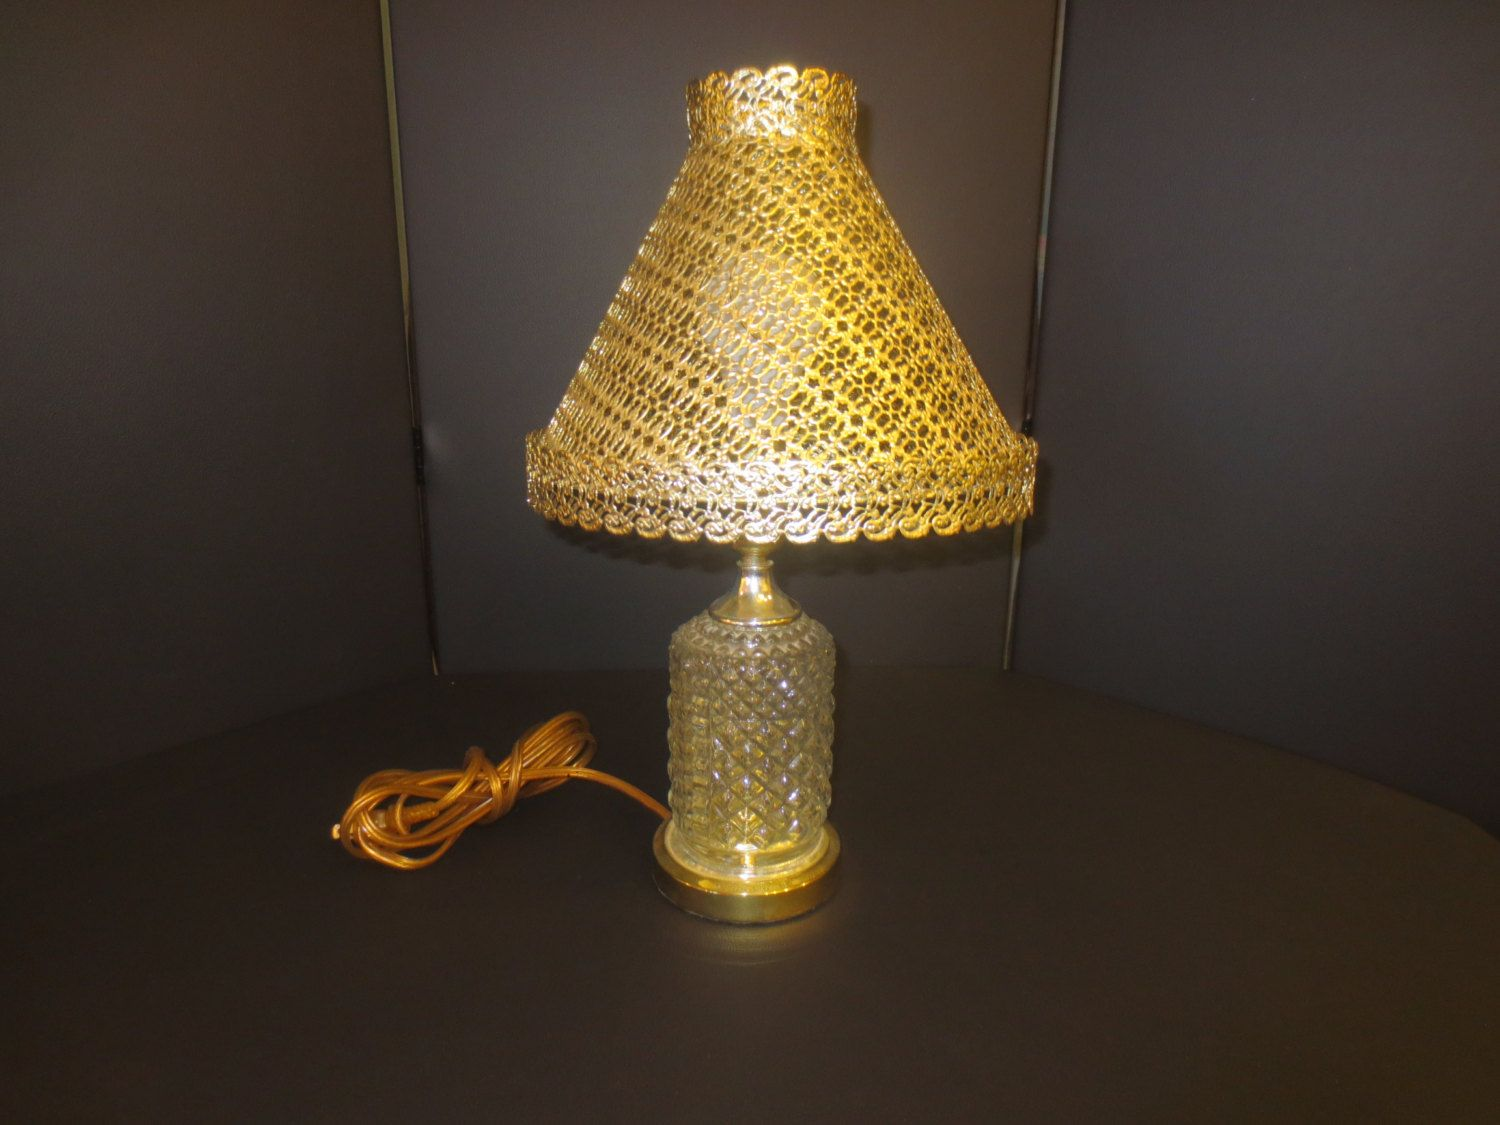 Vintage diamond cut glass table lamp by russellsretro on etsy mid vintage diamond cut glass table lamp by russellsretro on etsy mozeypictures Gallery